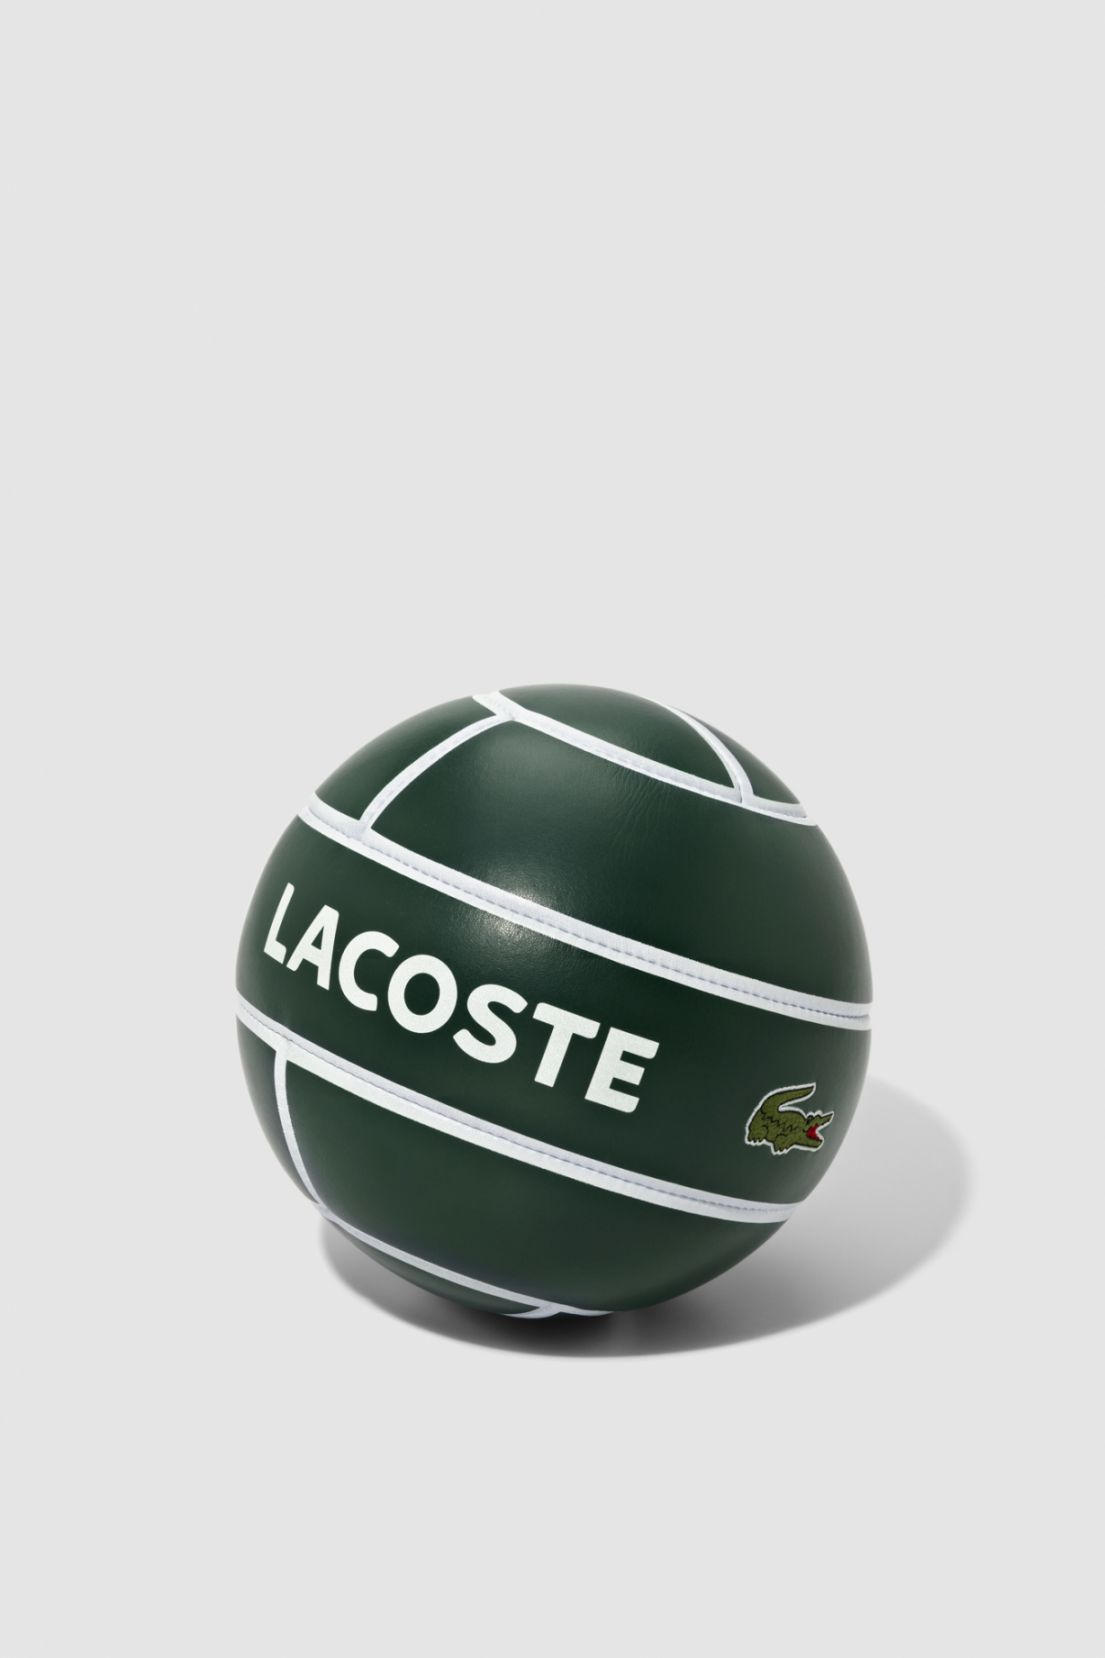 Lacoste Lab products